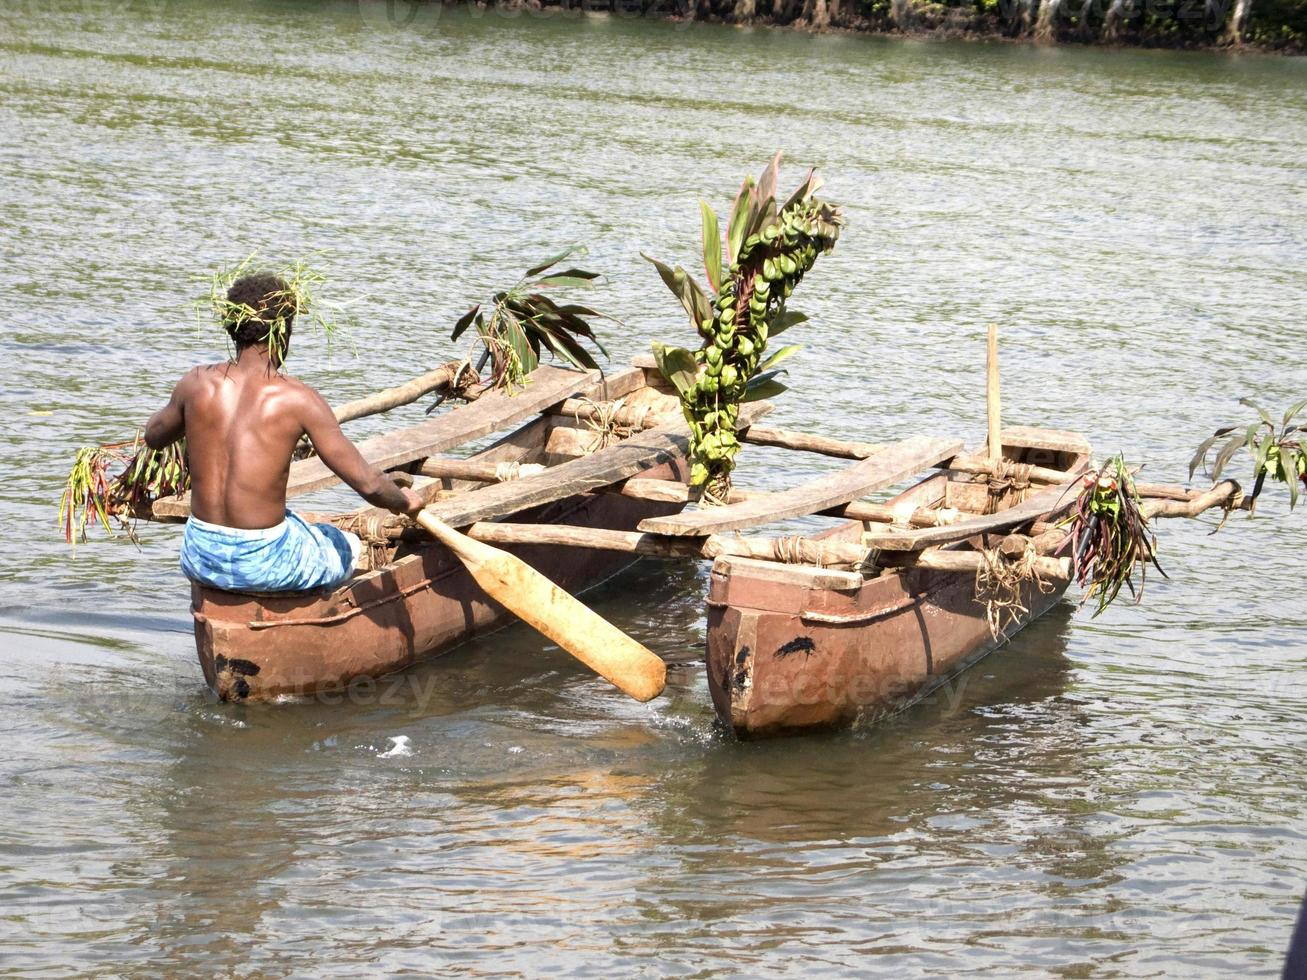 A tribal man pushing two canoes photo